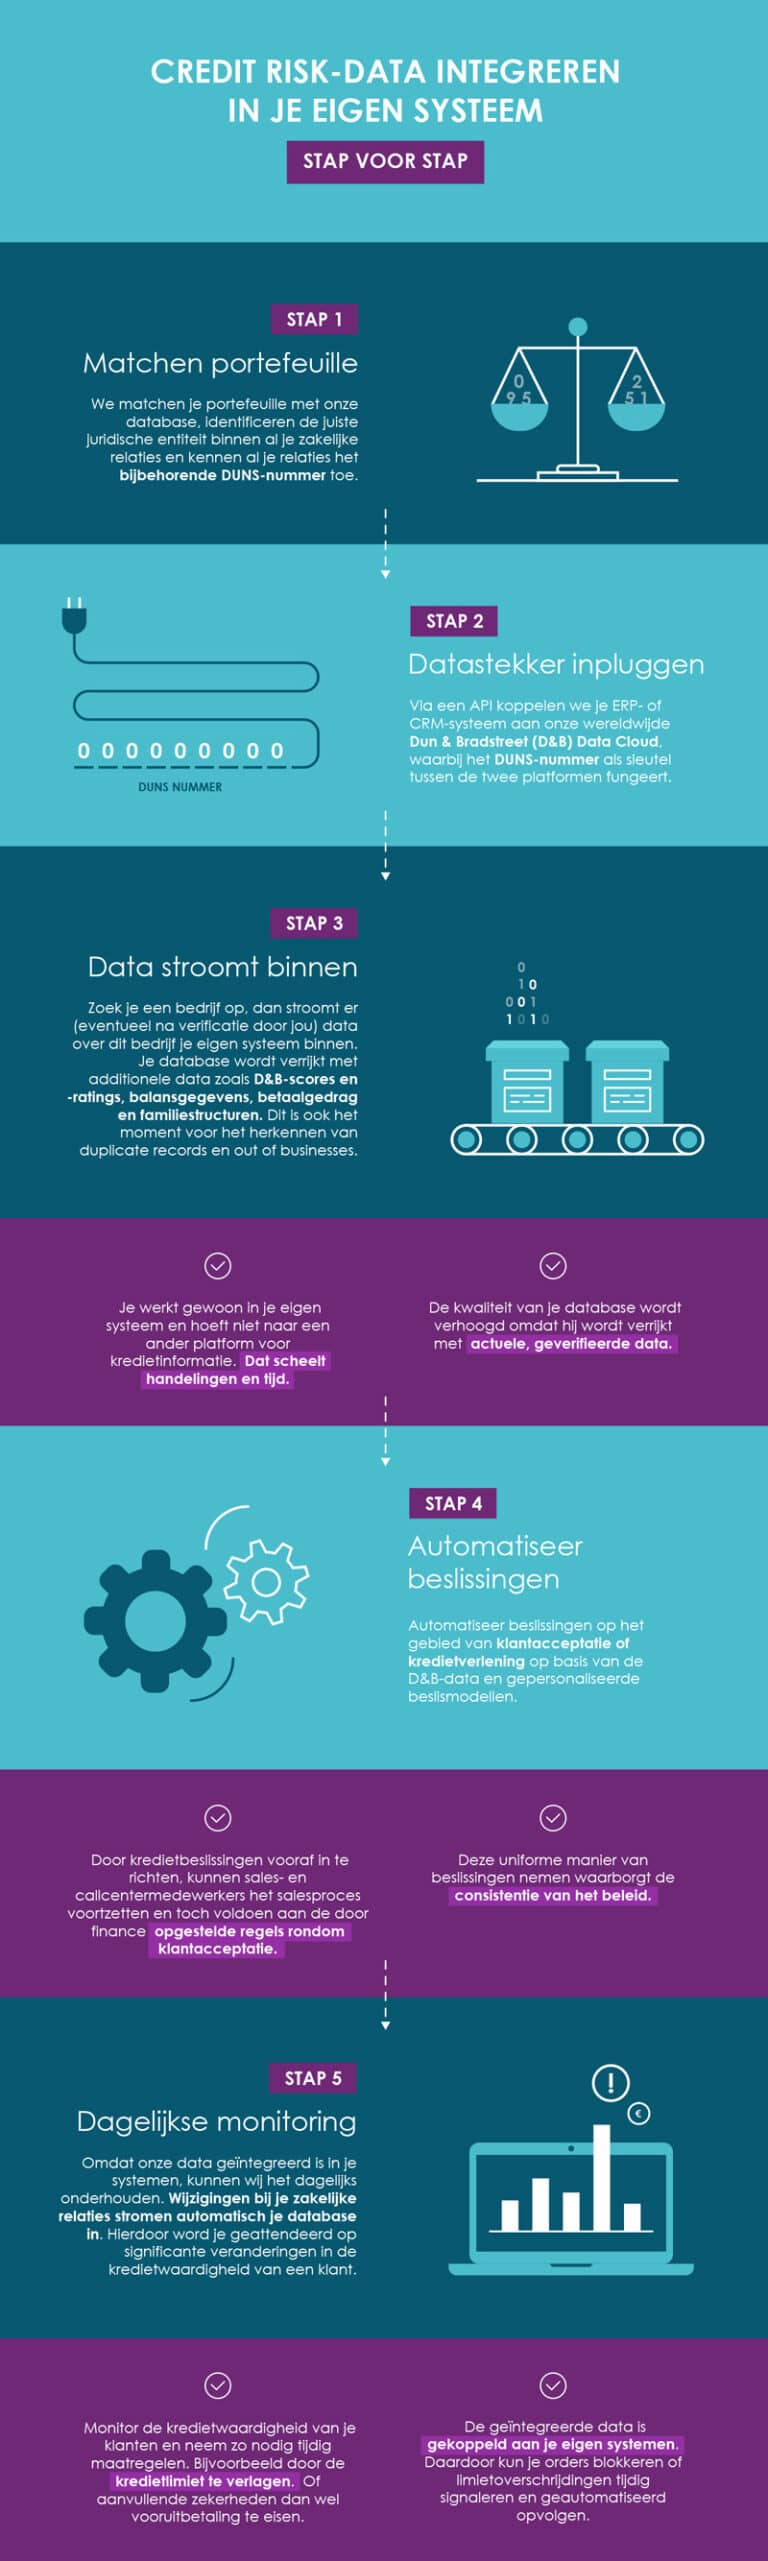 Infographic: Integrating credit risk data into your system